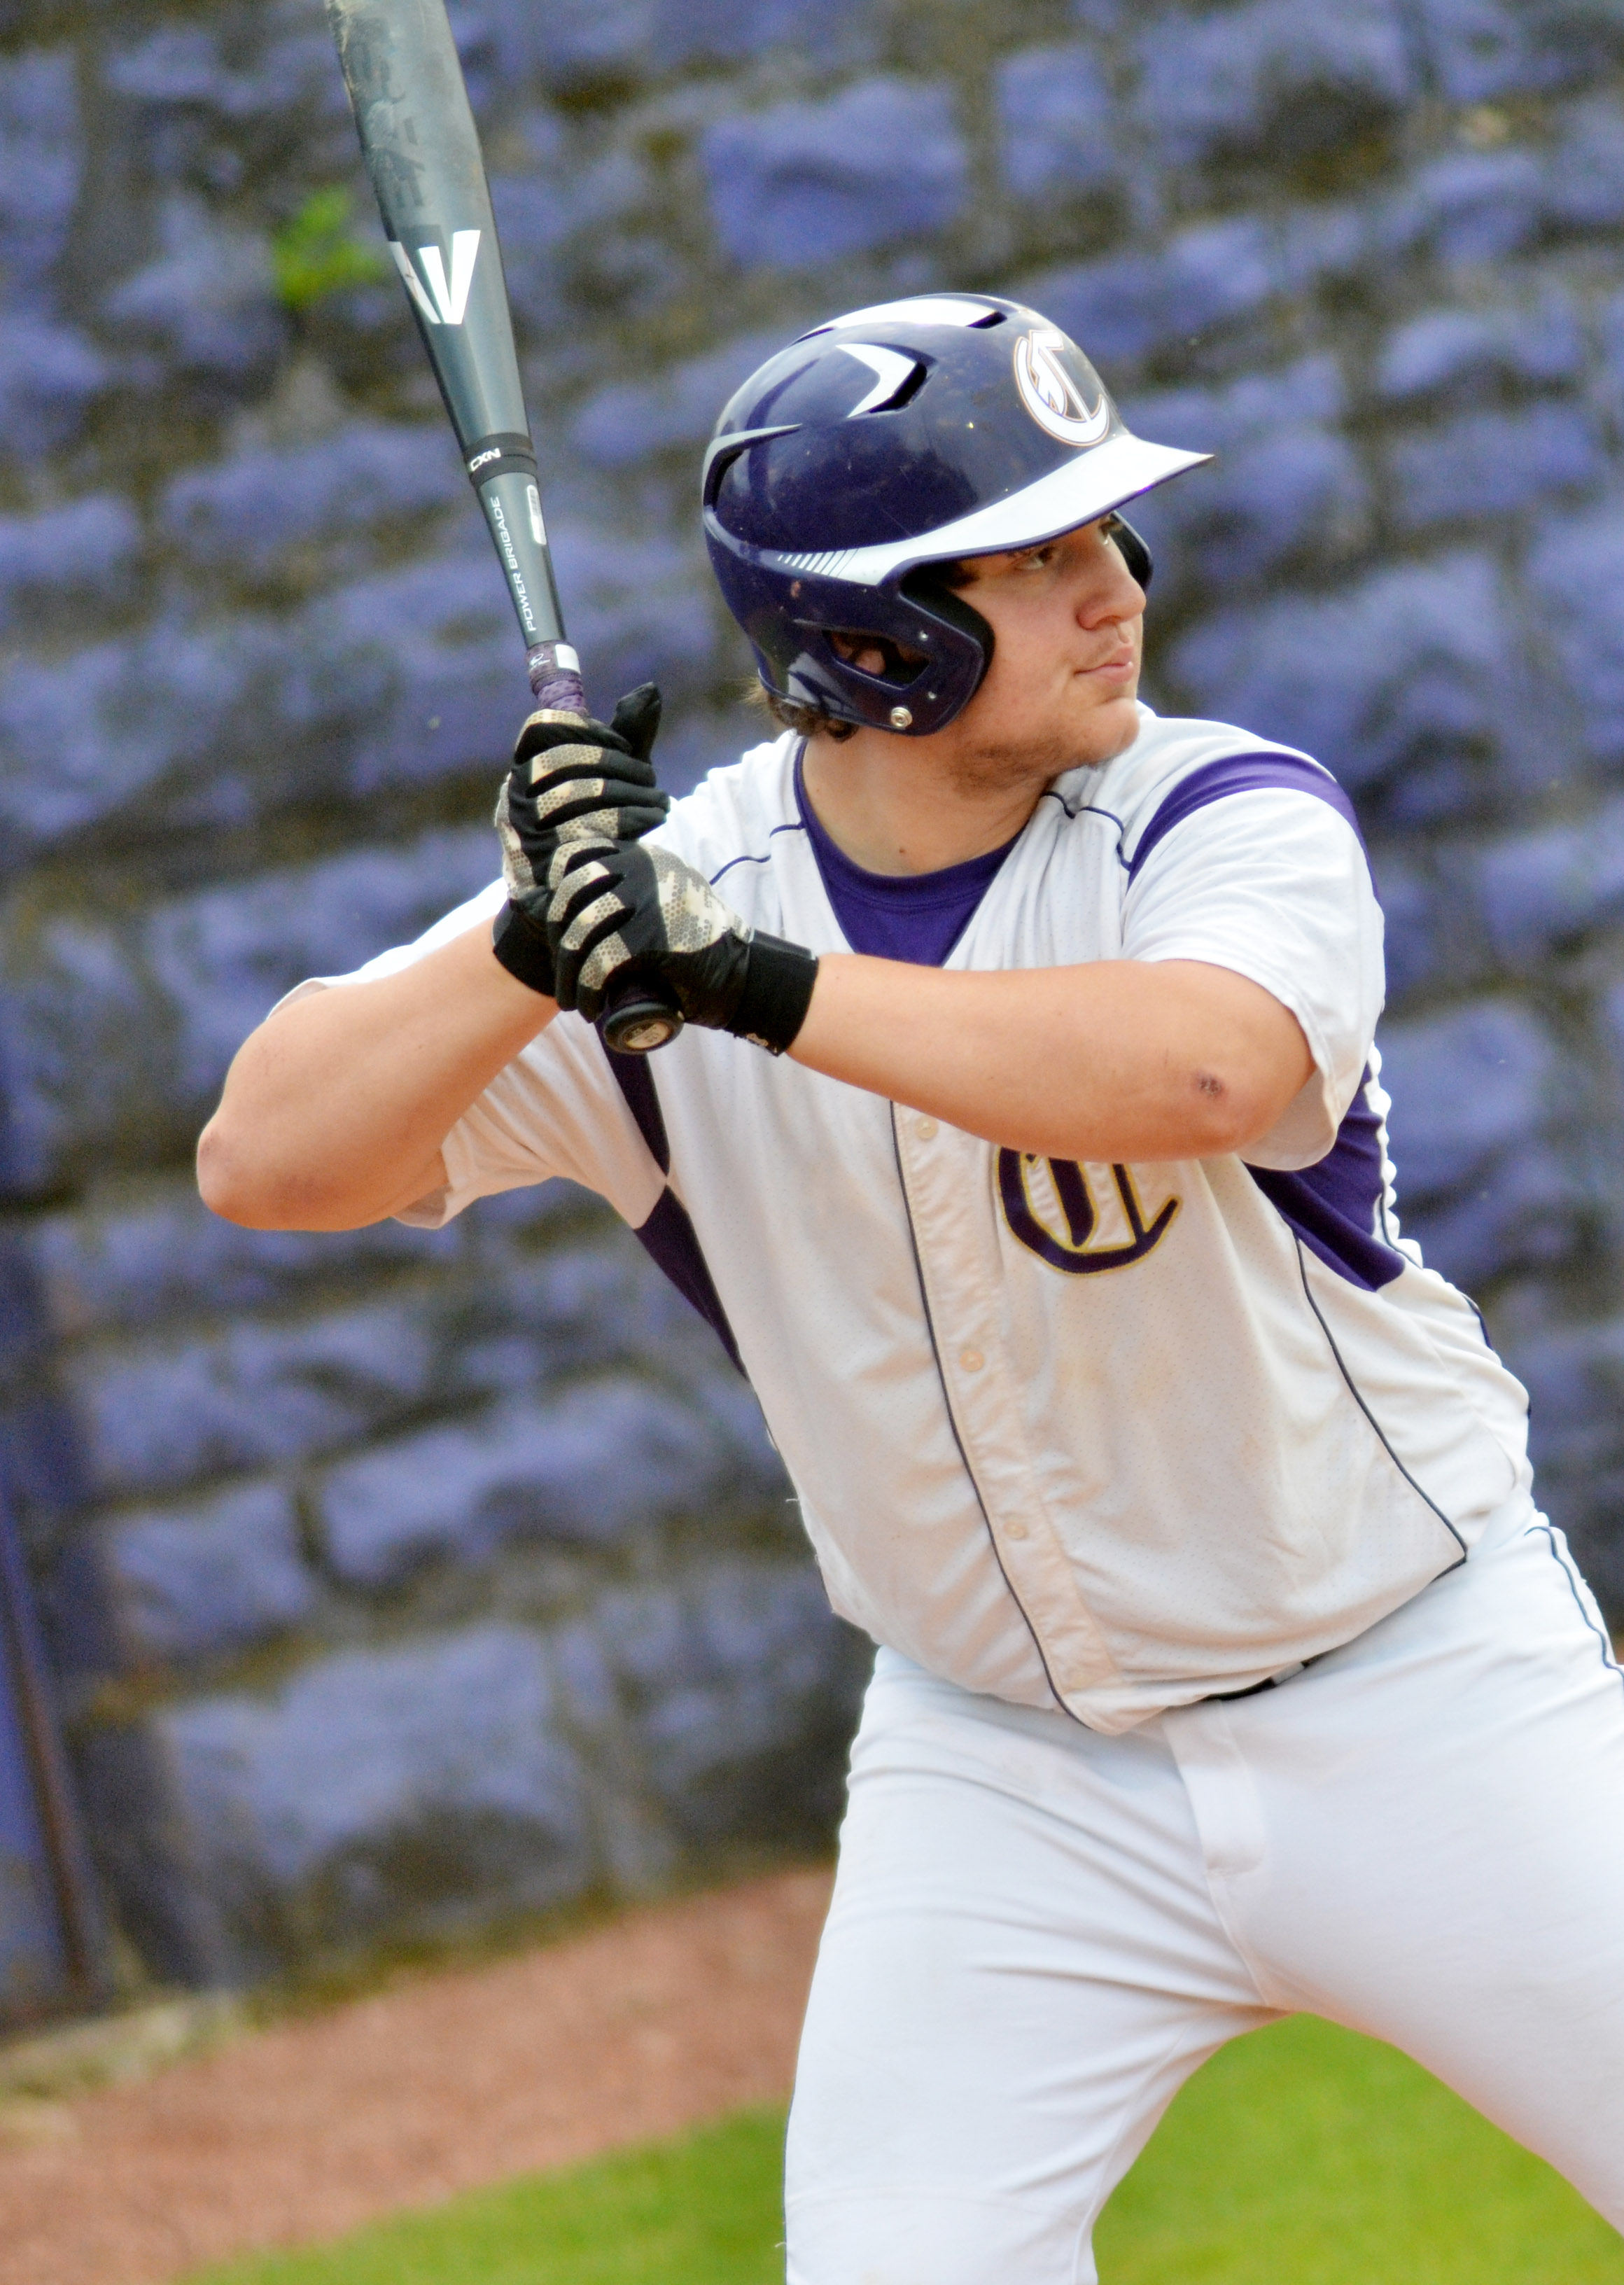 CHS senior Donnie Osinger bats.